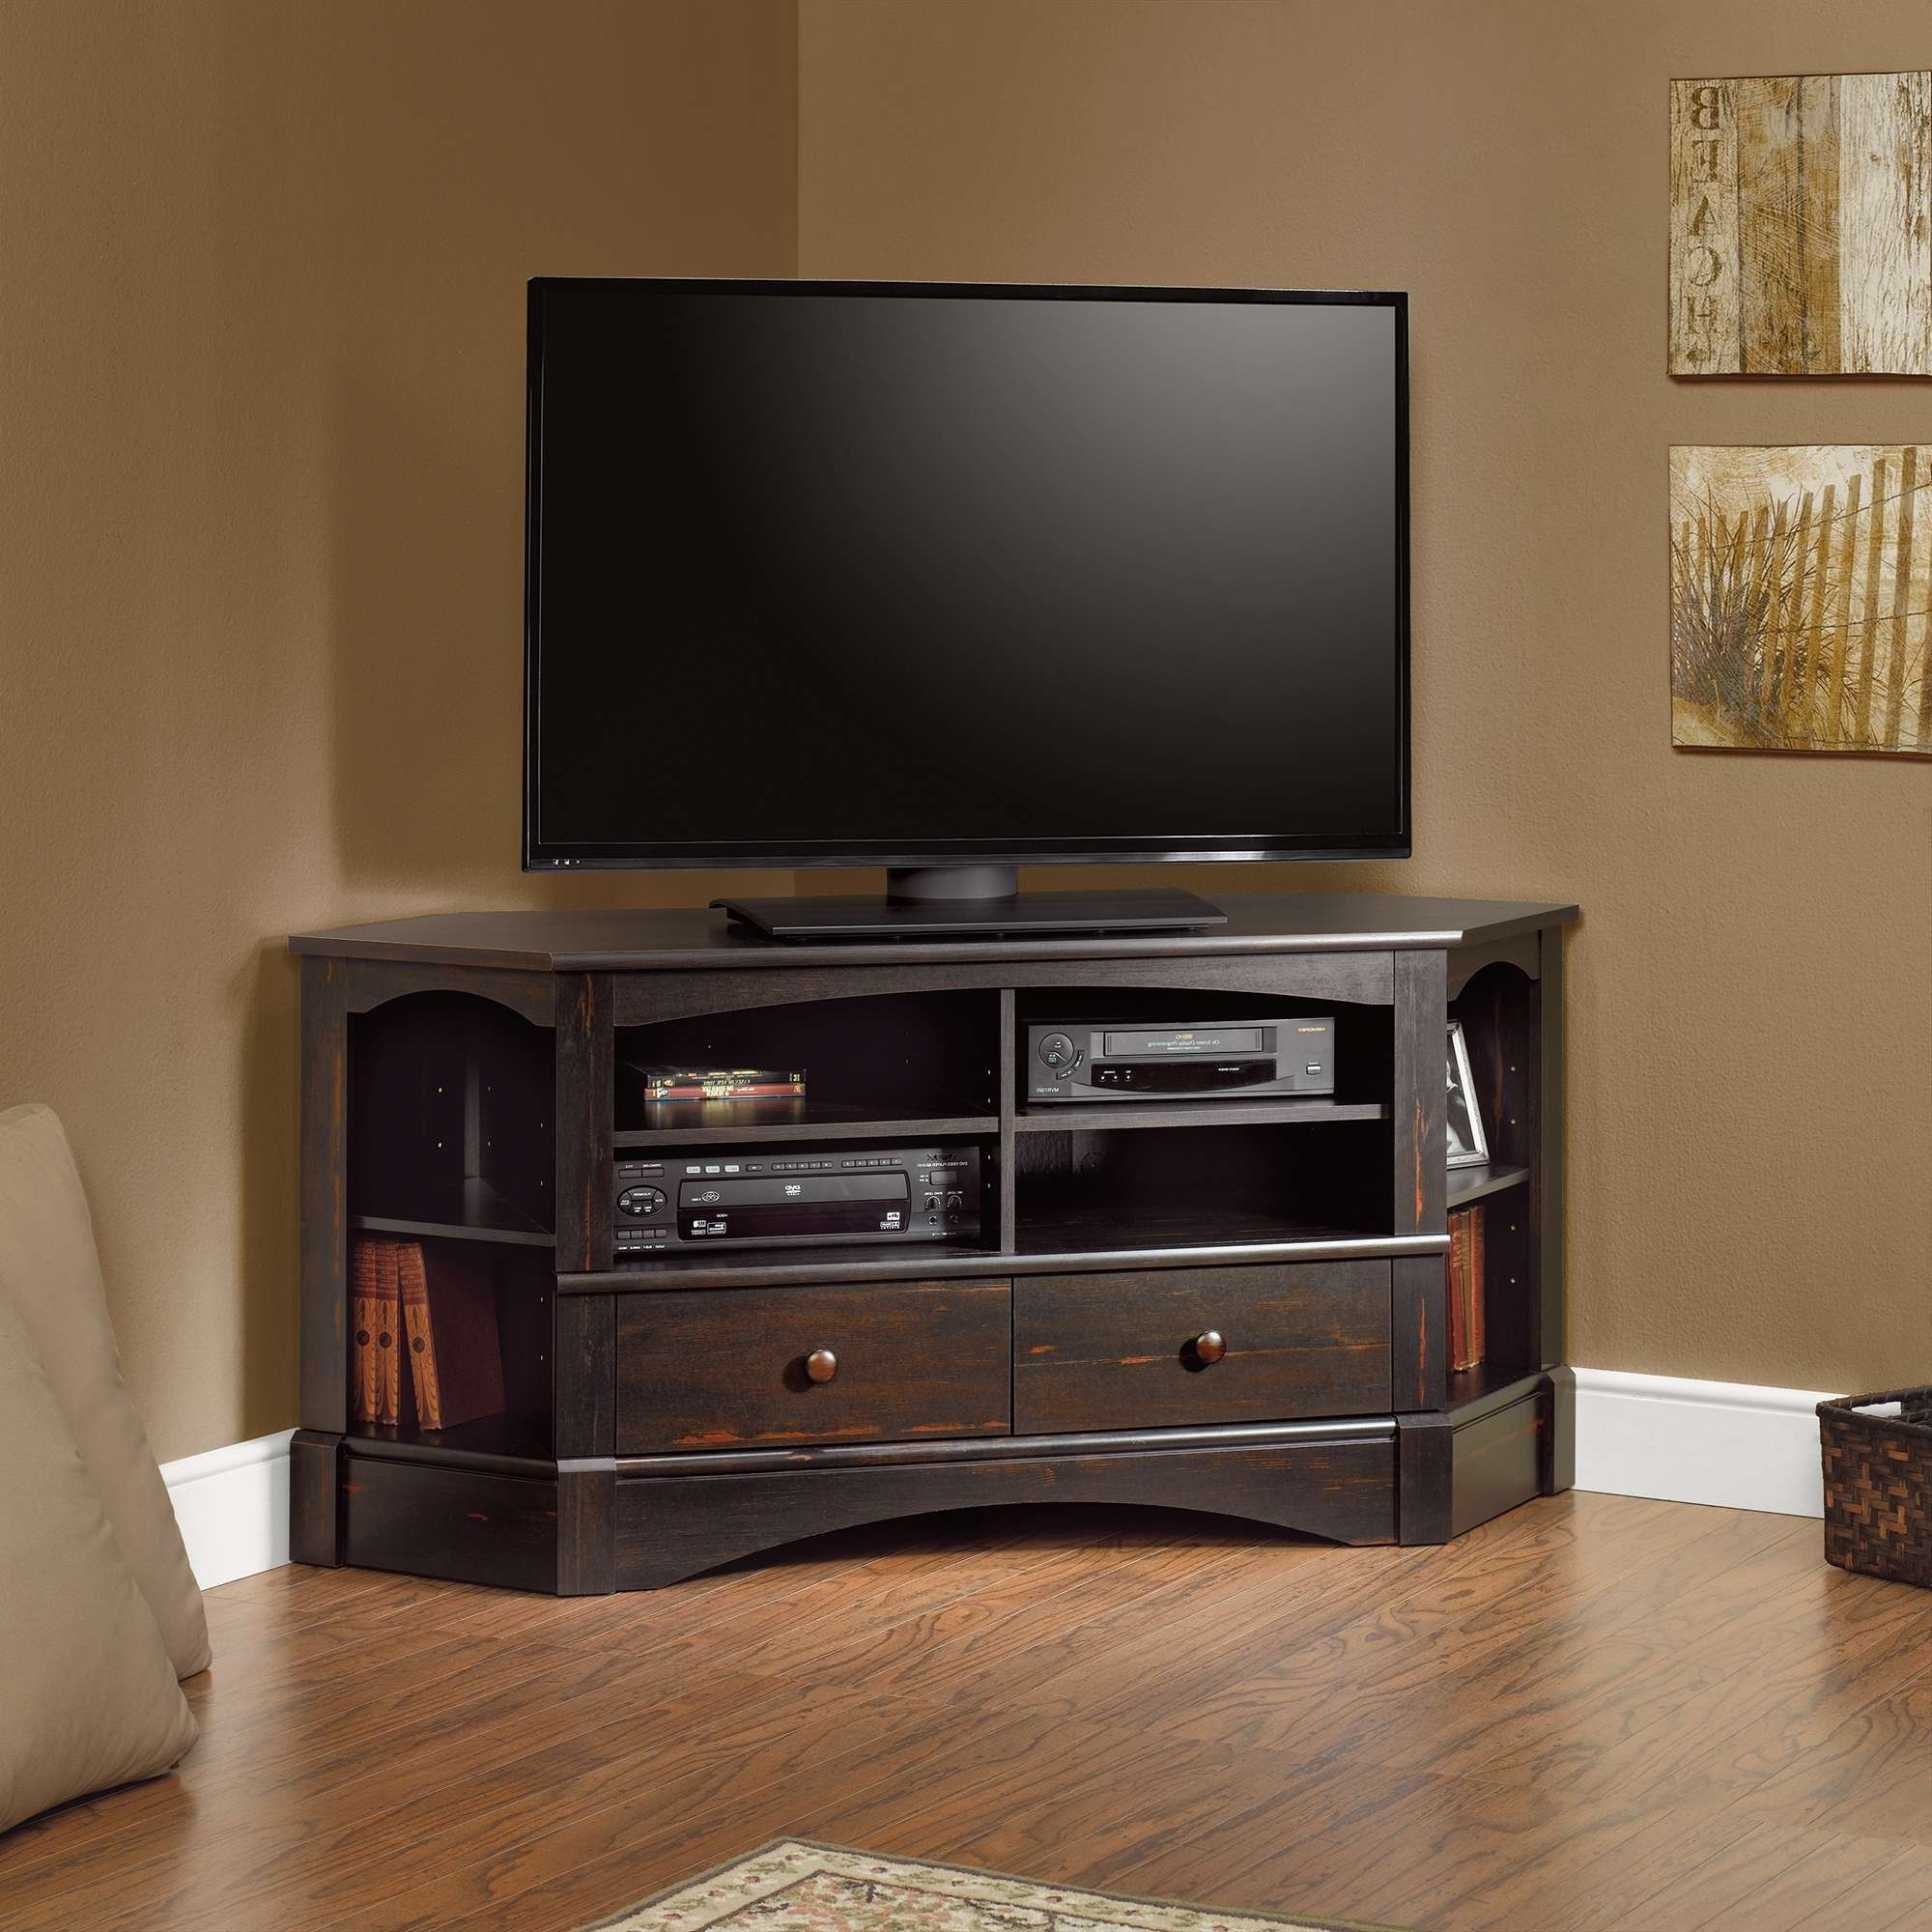 Harbor View | Corner Entertainment Credenza | 402902 | Sauder Throughout Corner Tv Cabinets With Hutch (View 15 of 20)